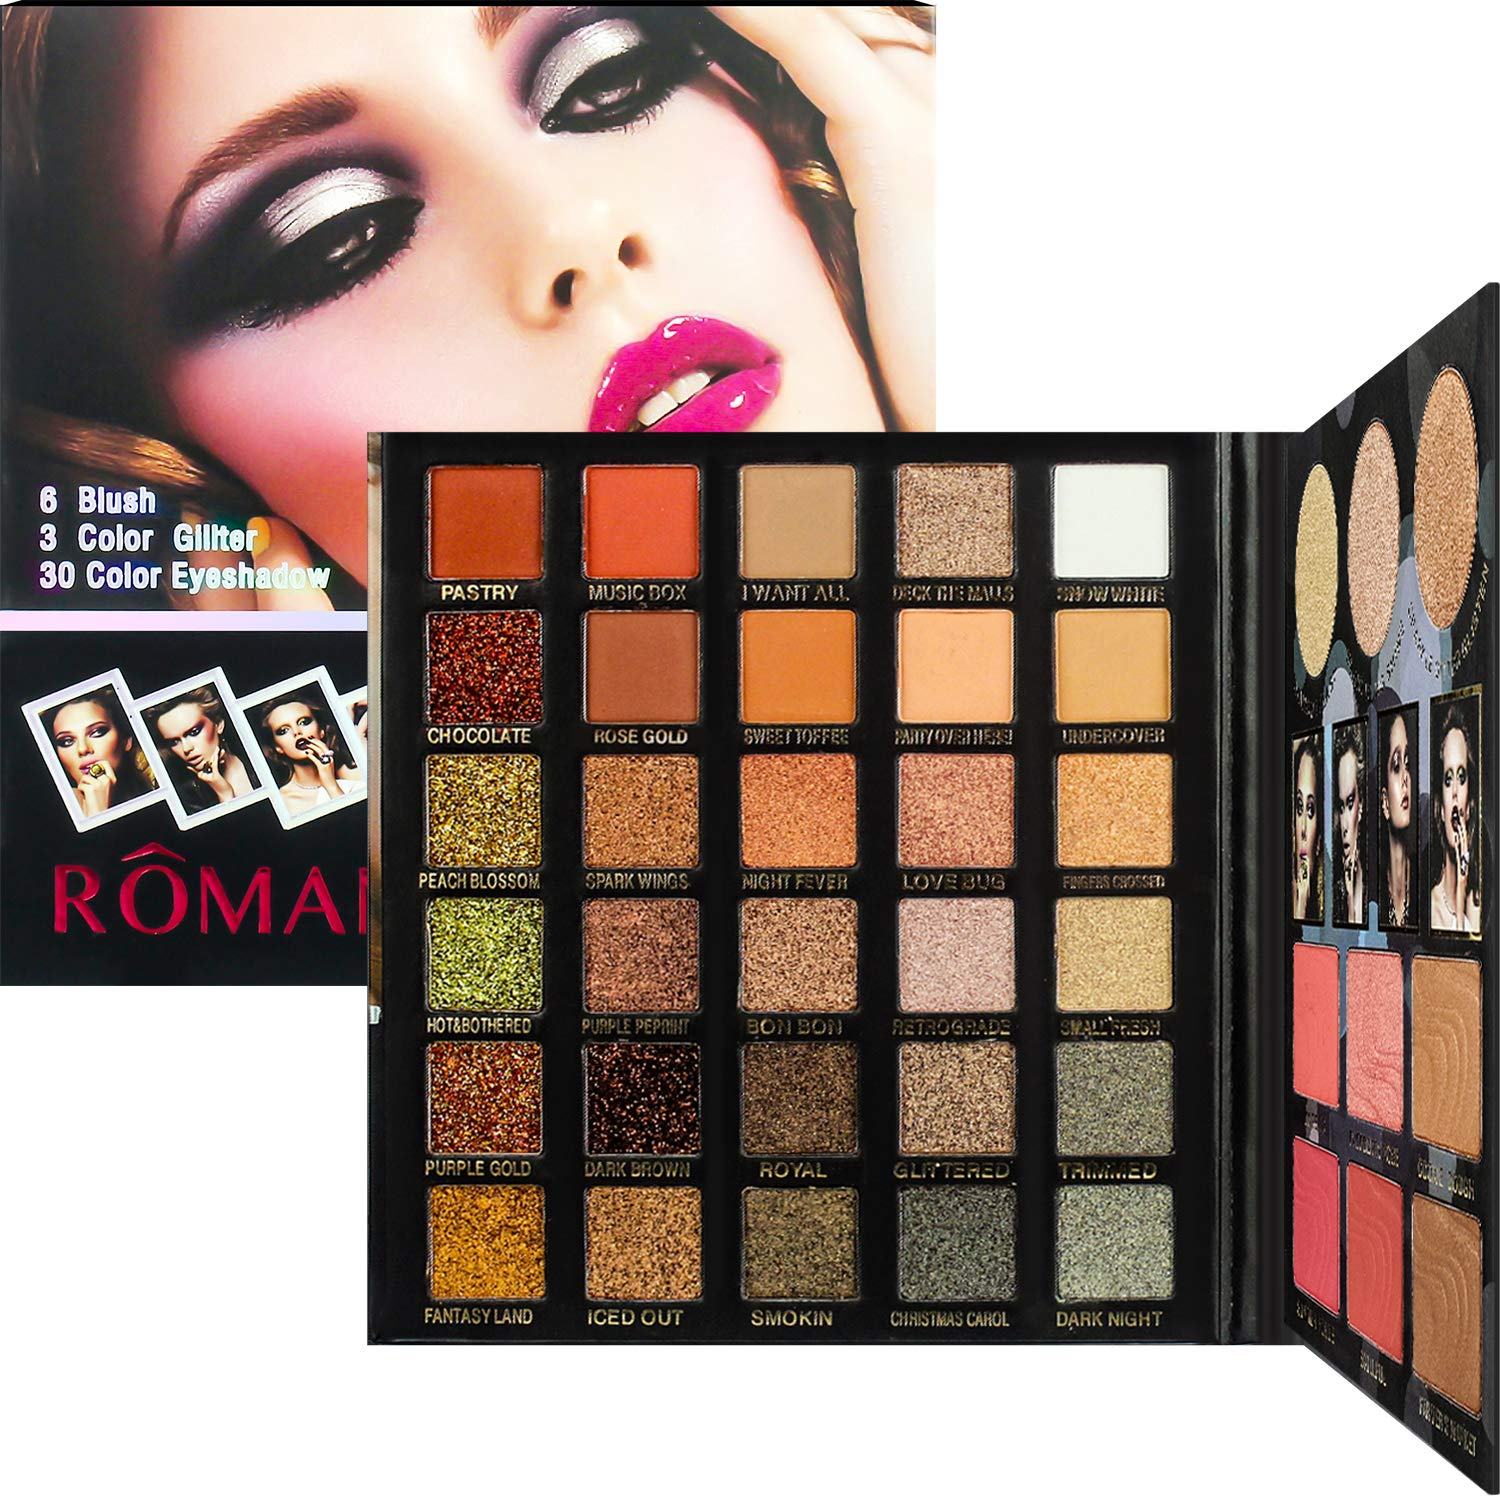 Proteove 39 Colors Eyeshadow Palette - Fashionable Nudes Warm Natural Bronze Neutral Smoky Cosmetic Makeup Eye Shadows, High Pigment, Multi Reflective Shimmer Matte Glitter, Eyeshadow Shield Included